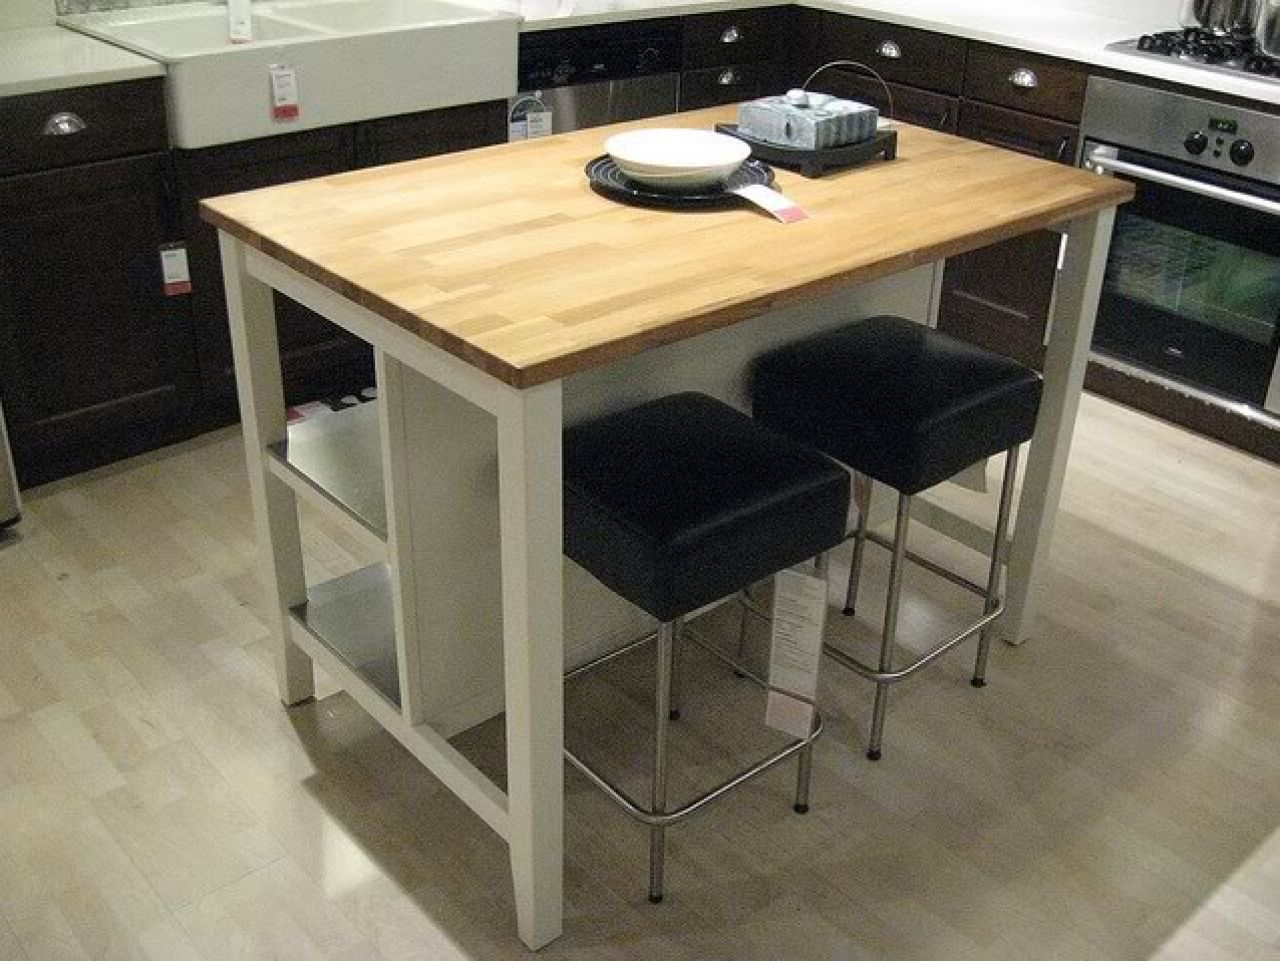 island table for kitchen ikea island for kitchen ikea mdfyw home projects 7602